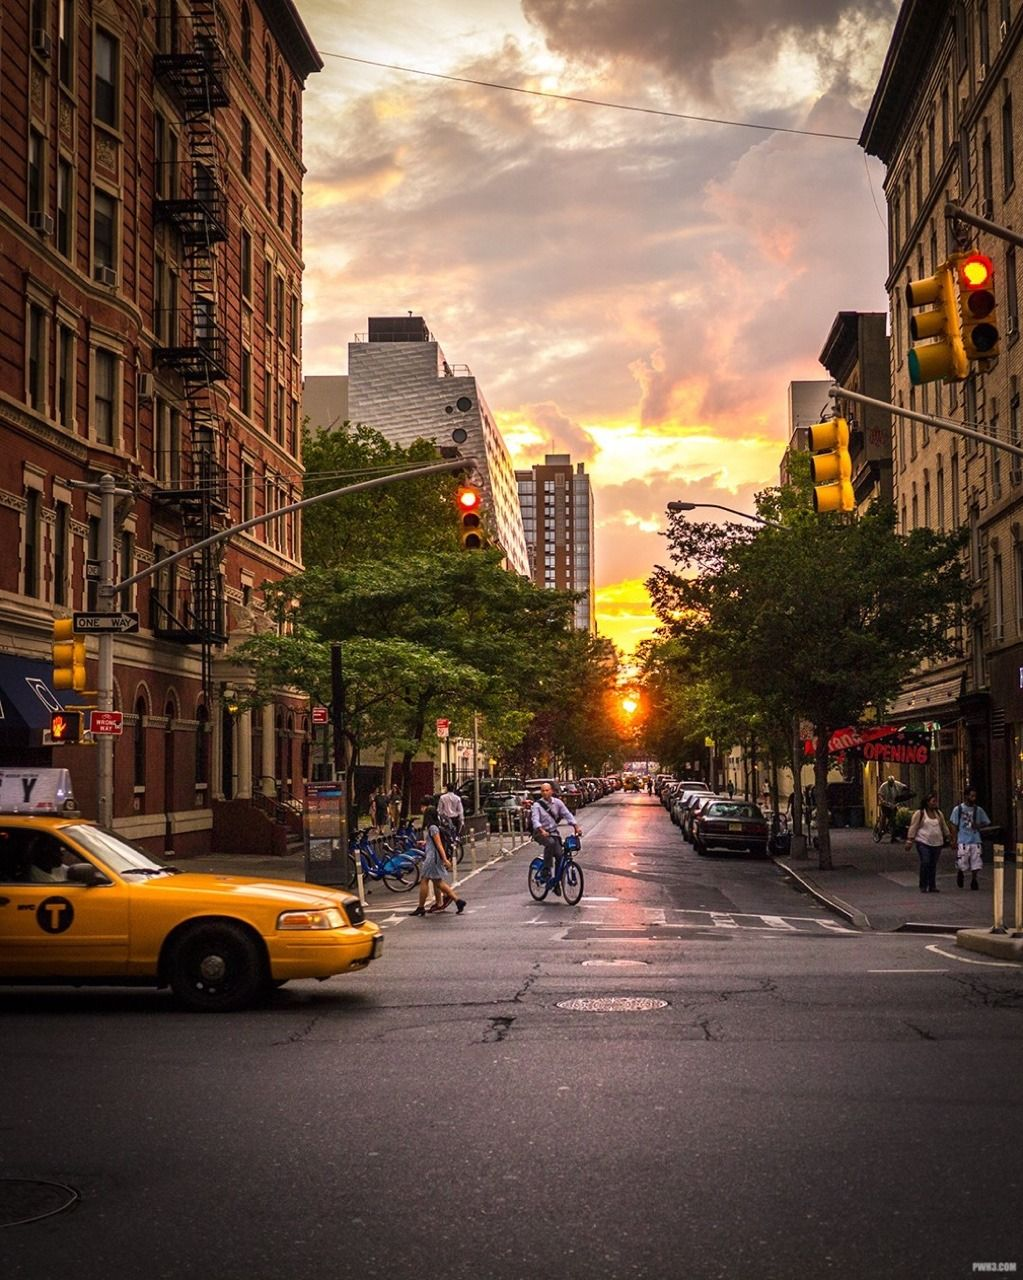 New York City life at sunset by pwh3 - The Best Photos and Videos of New York City including the Statue of Liberty, Brooklyn Bridge, Central Park, Empire State Building, Chrysler Building and other popular New York places and attractions.